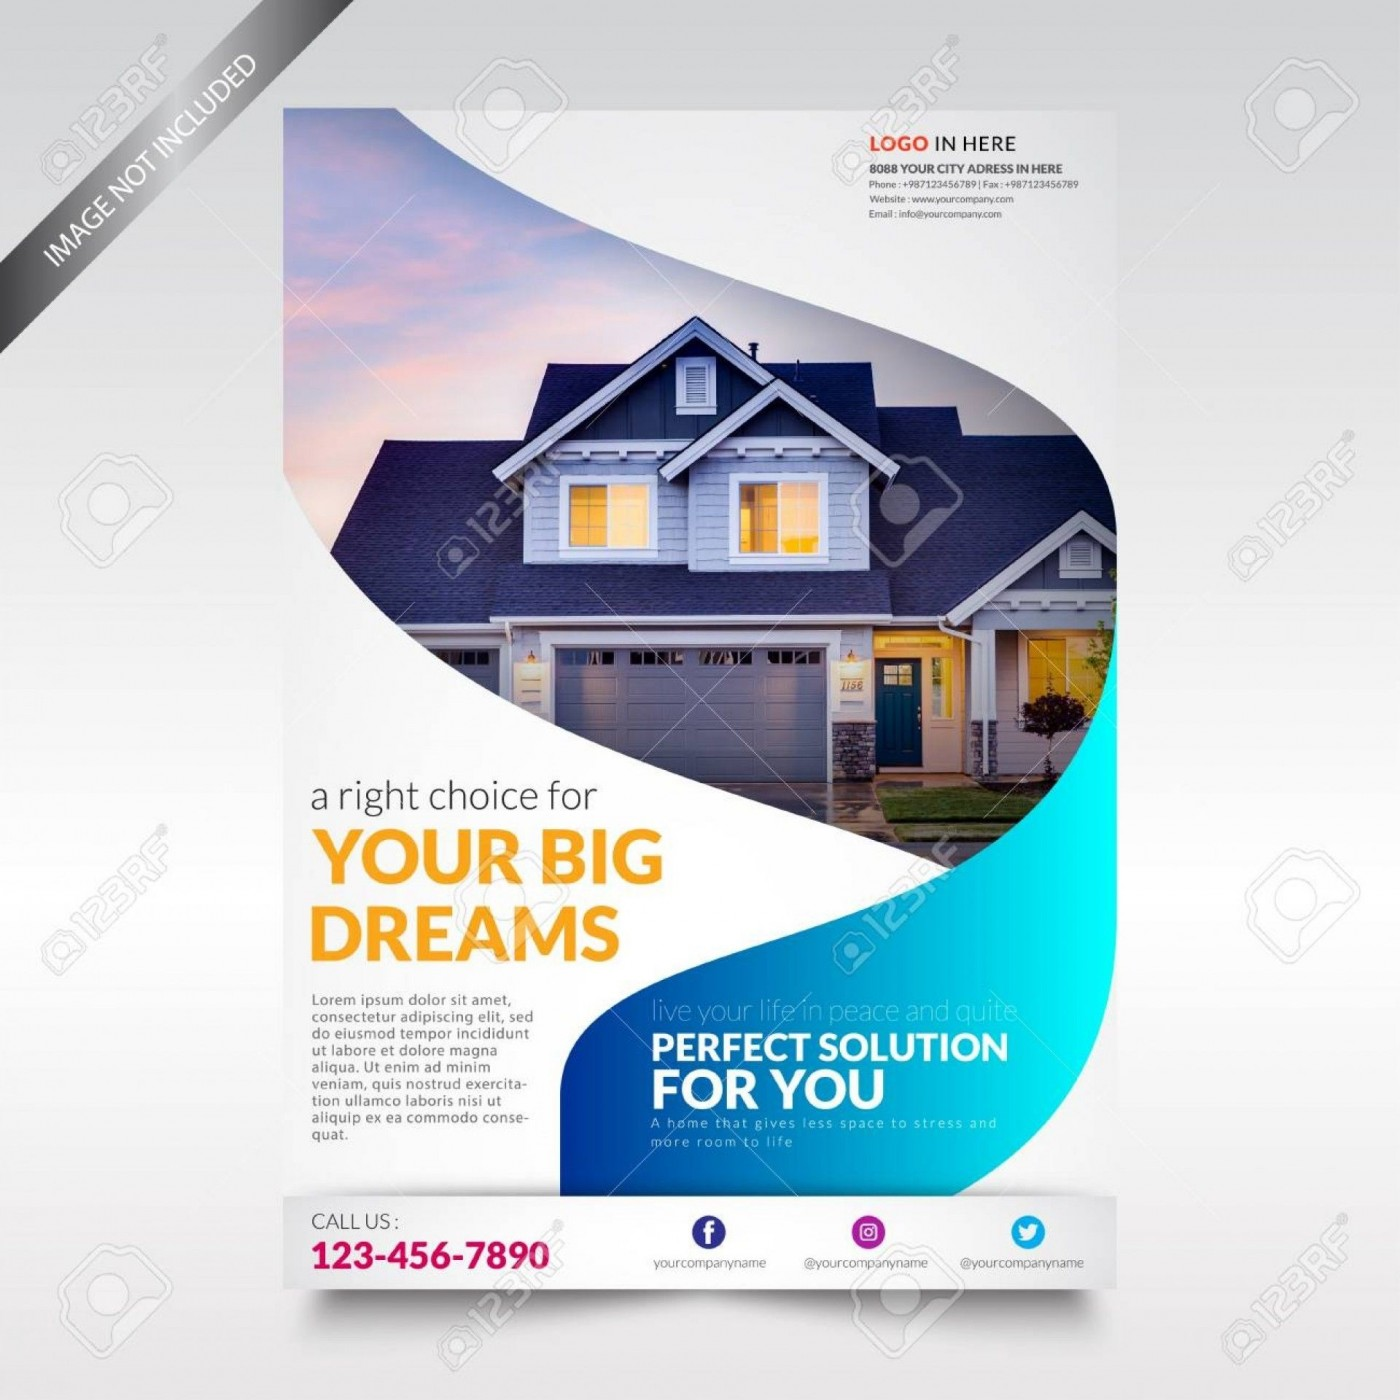 001 Unusual Real Estate Advertising Template Image  Newspaper Ad Instagram Craigslist1400